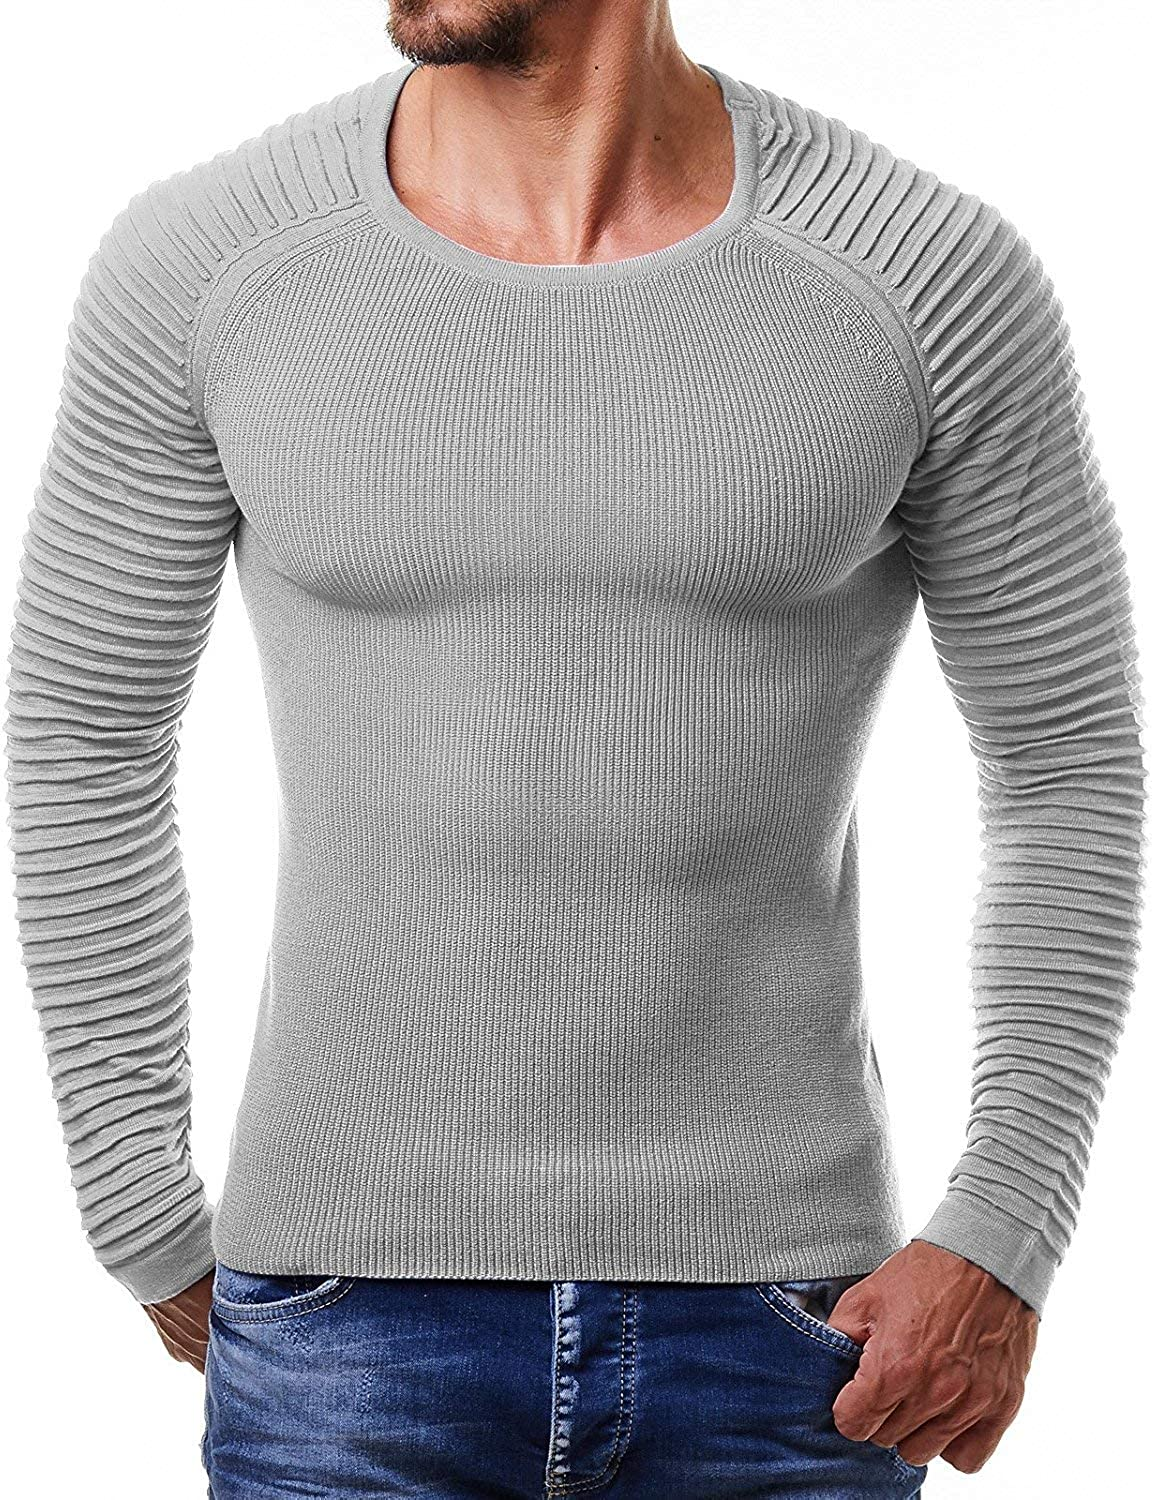 Beloved Mens Casual Crewneck Long Sleeve Colorblock Knitted Sweater Jumper